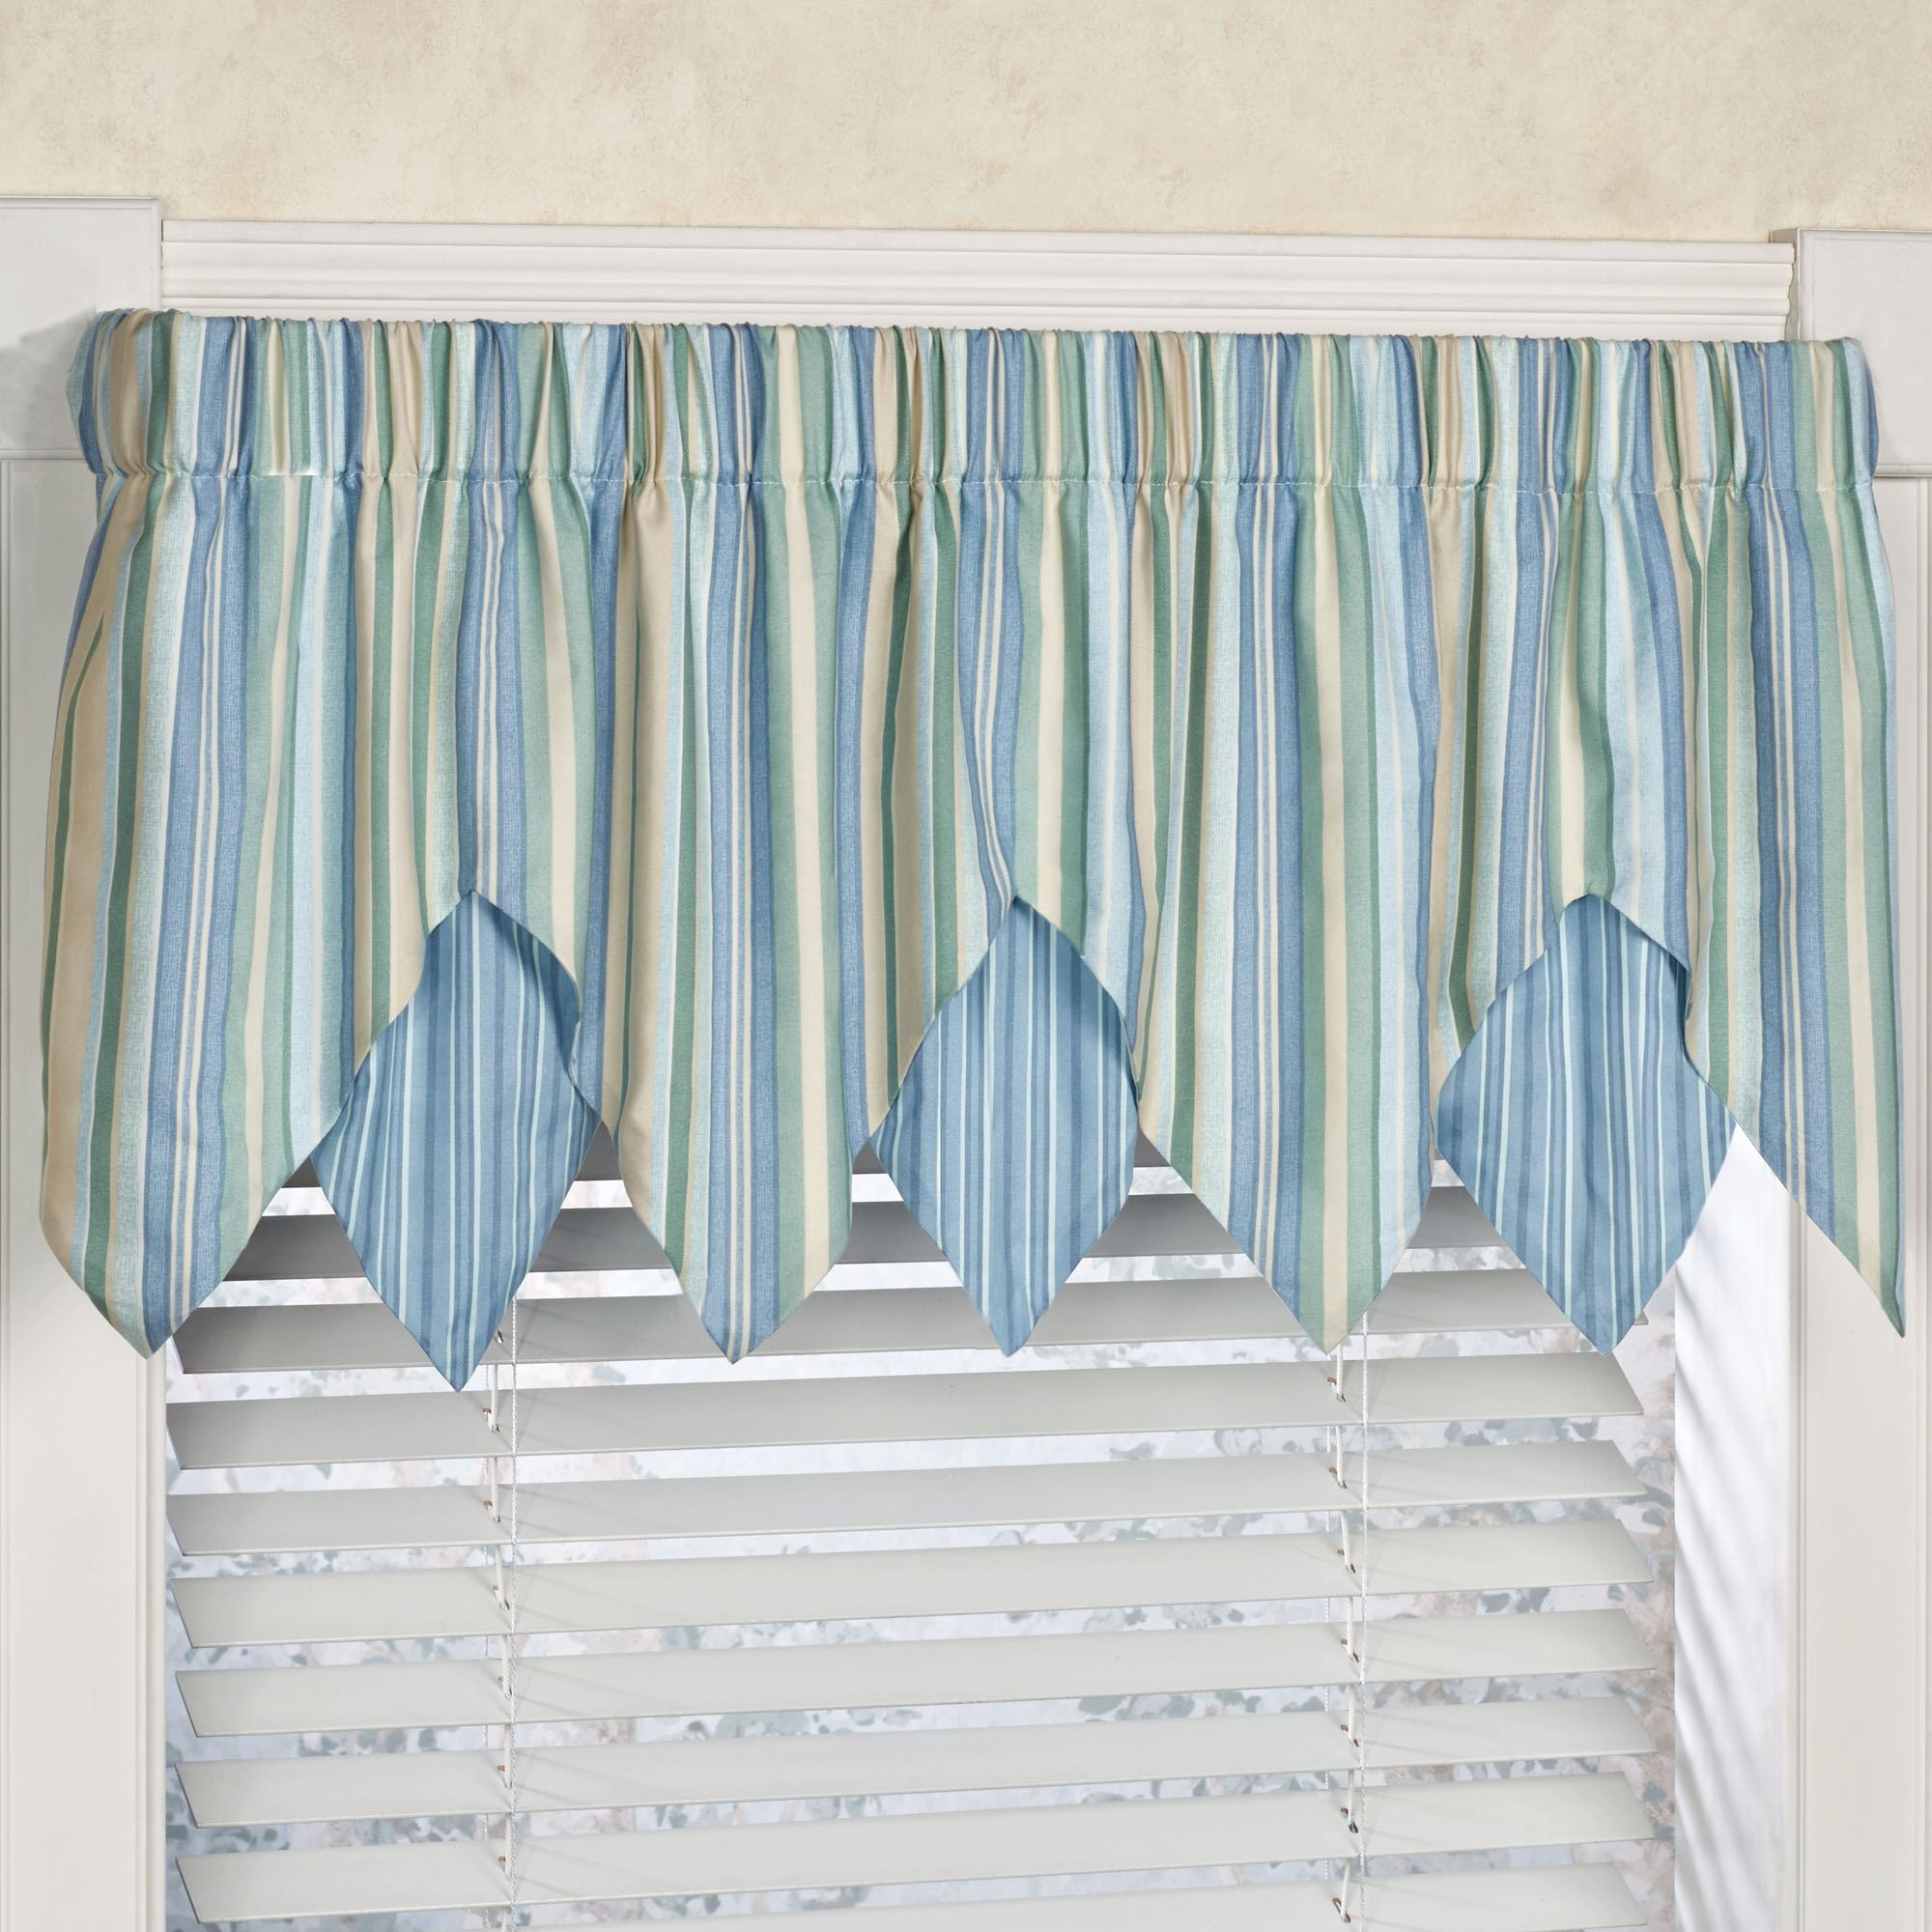 Striped Valances For Kitchen Windows